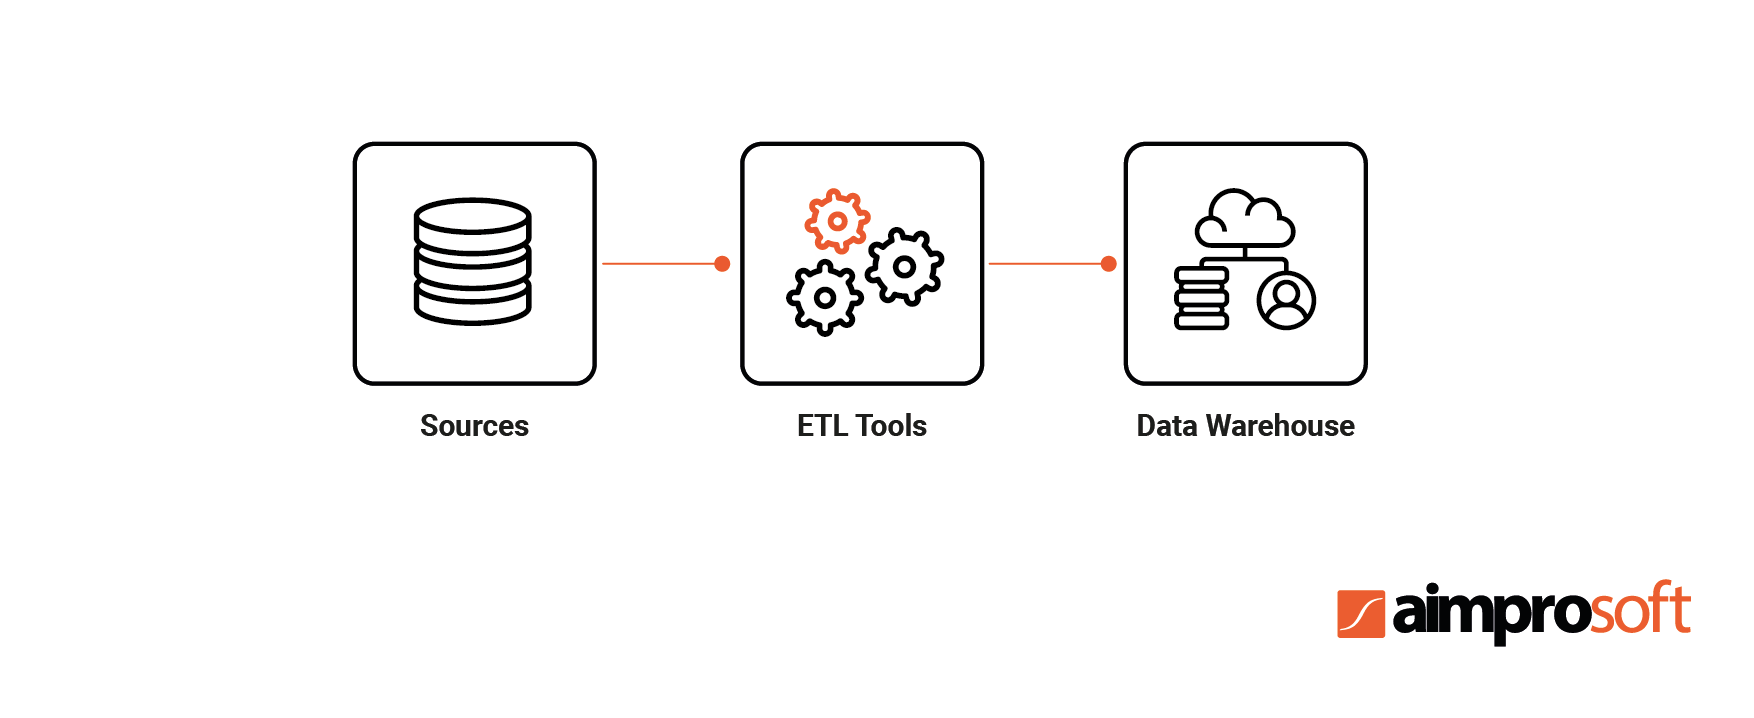 Role of ETL tools in ETL process